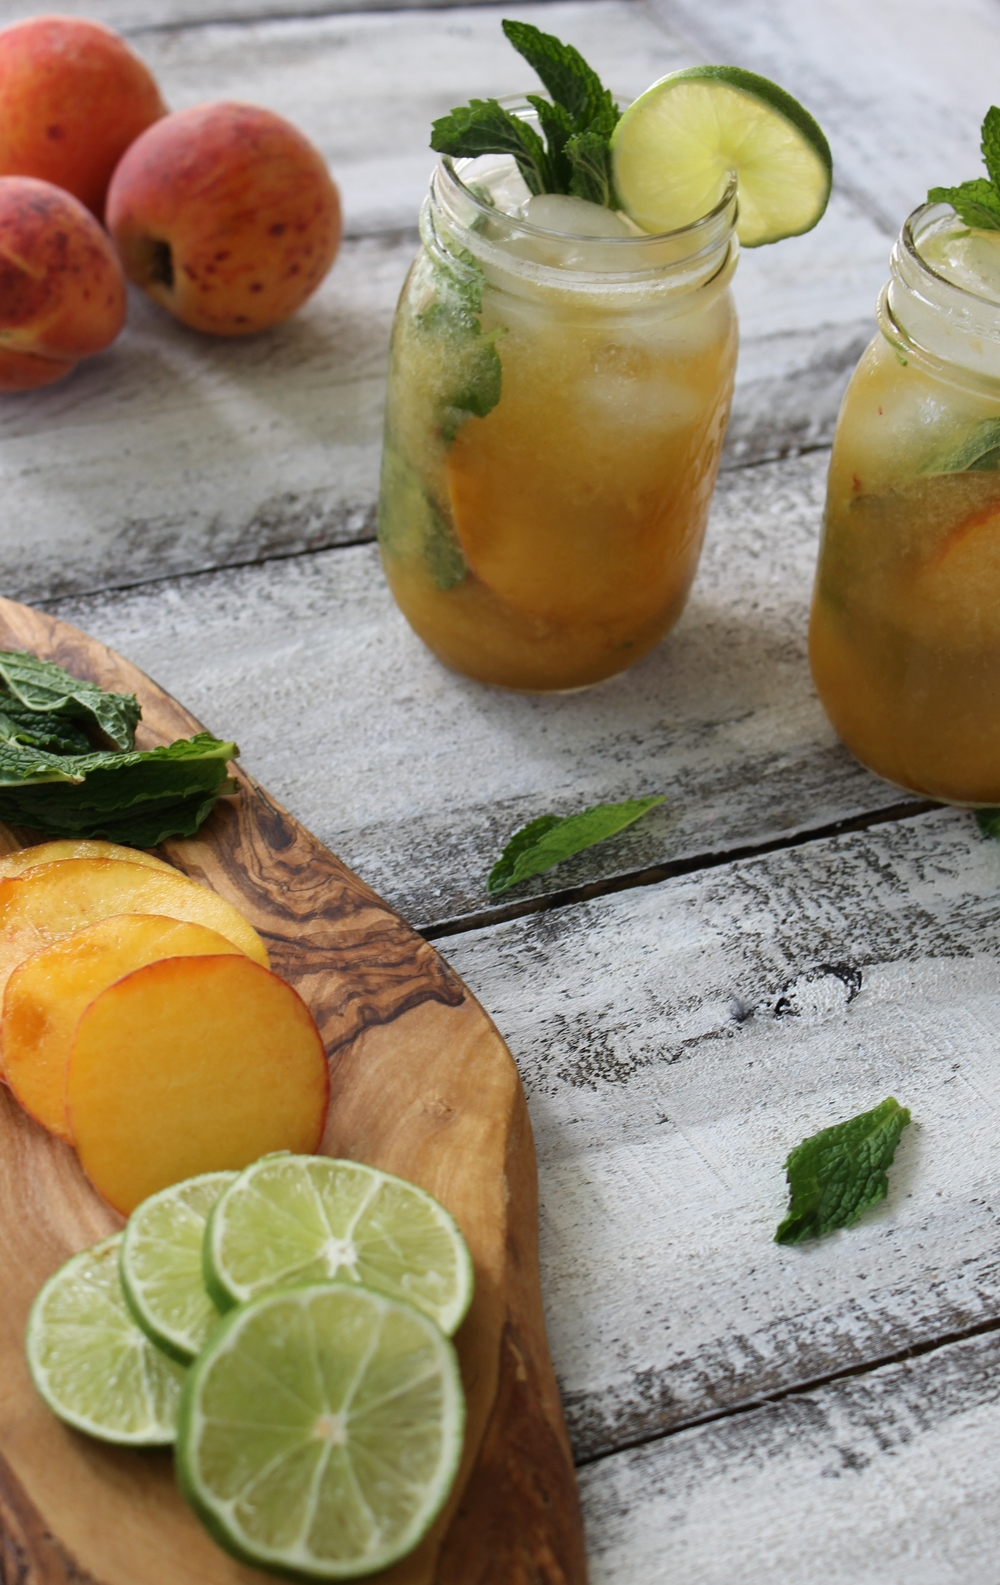 louisiana peach mojito.jpg